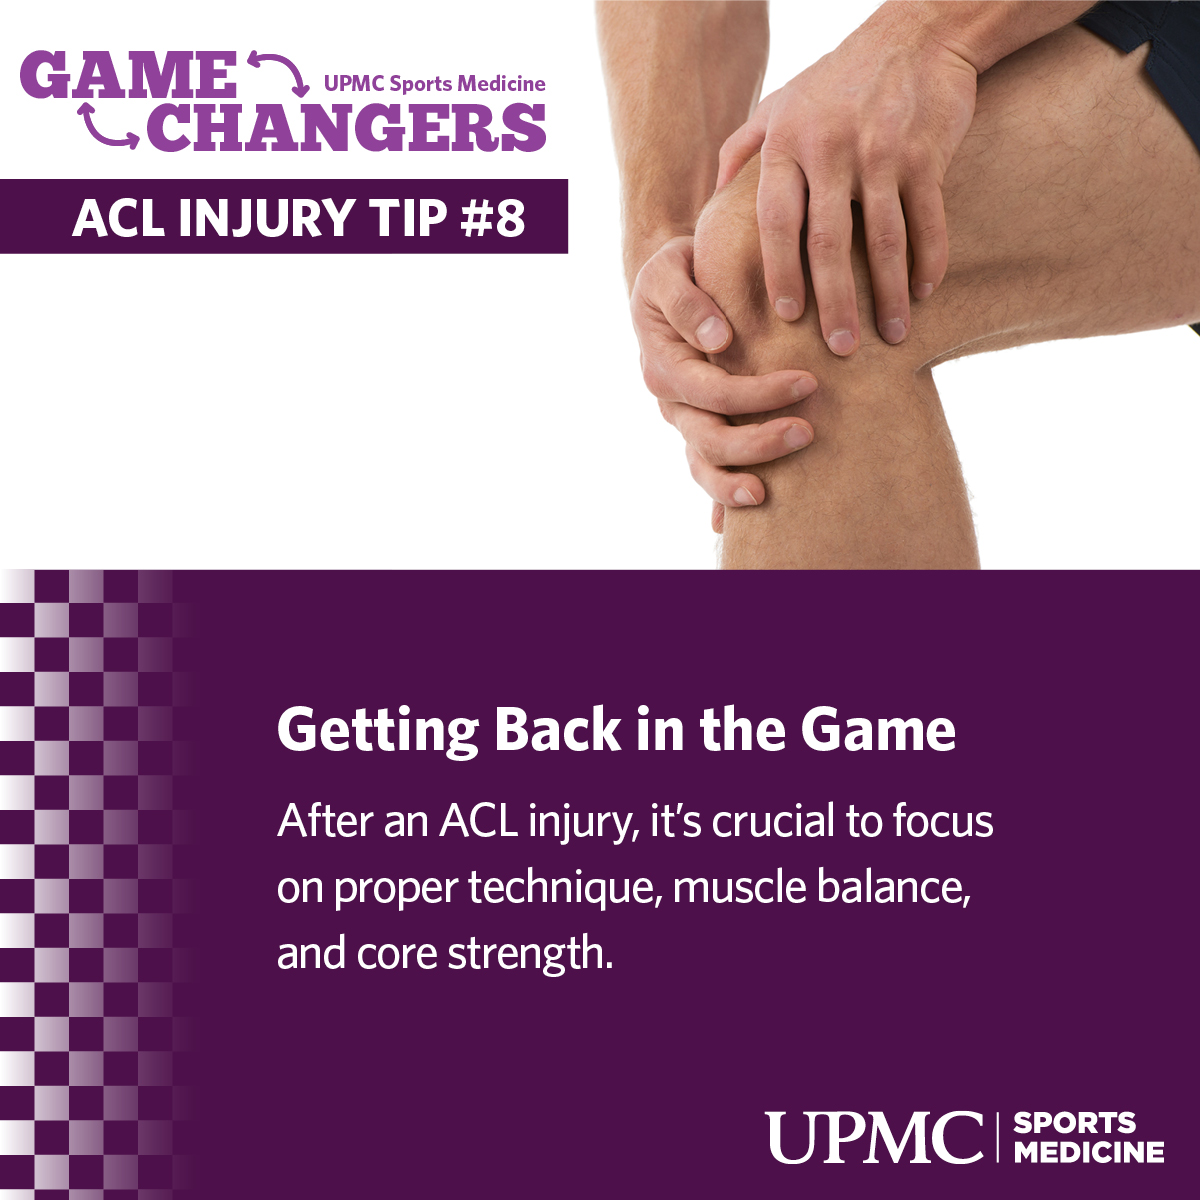 UPMC_GameChangers_ACL_FB8_FINAL